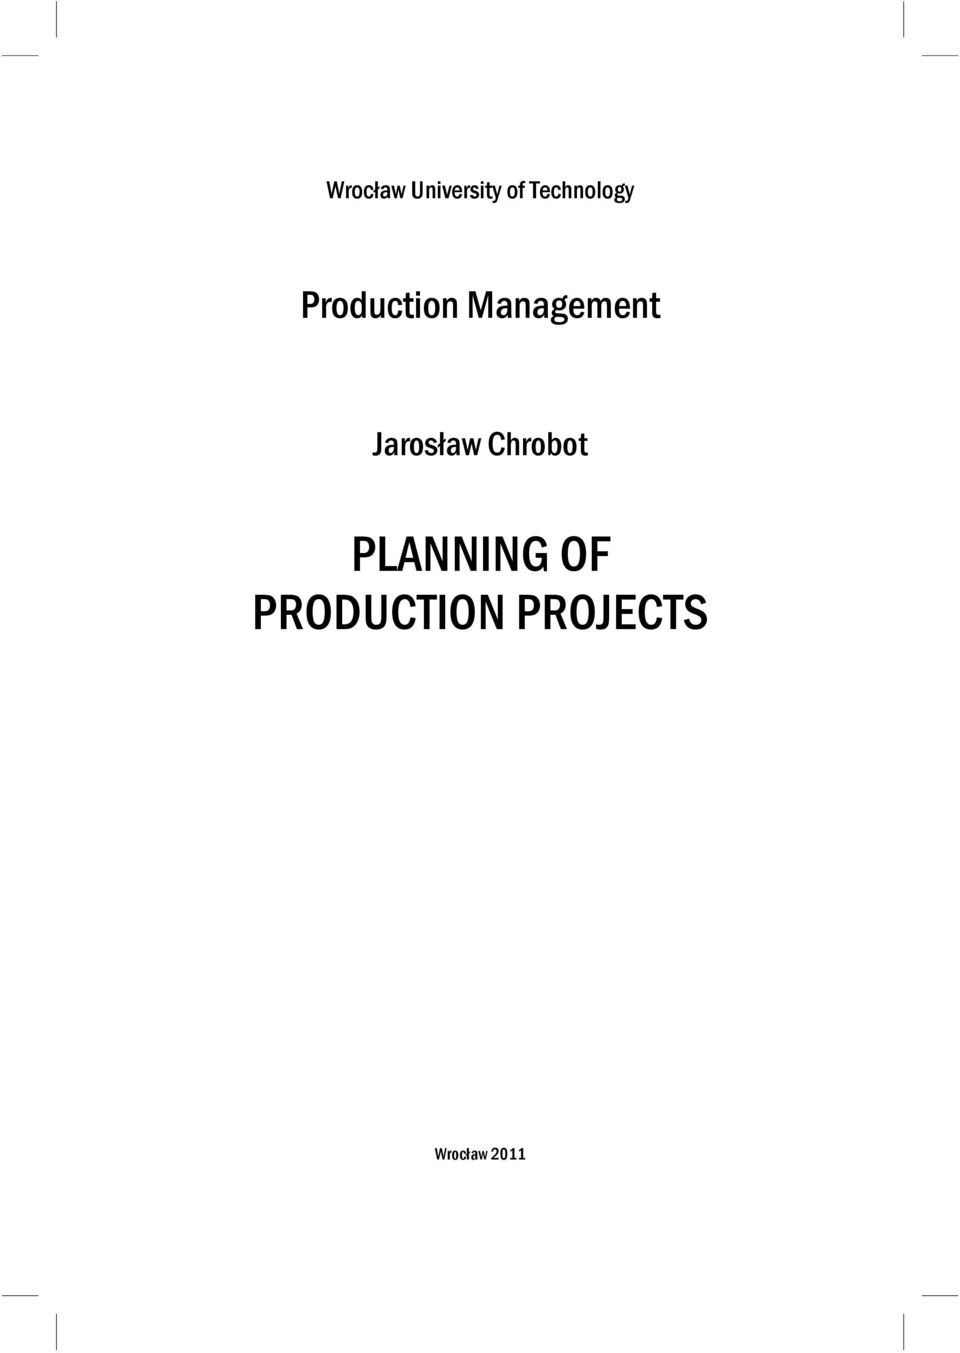 Chrobot PLANNING OF PRODUCTION